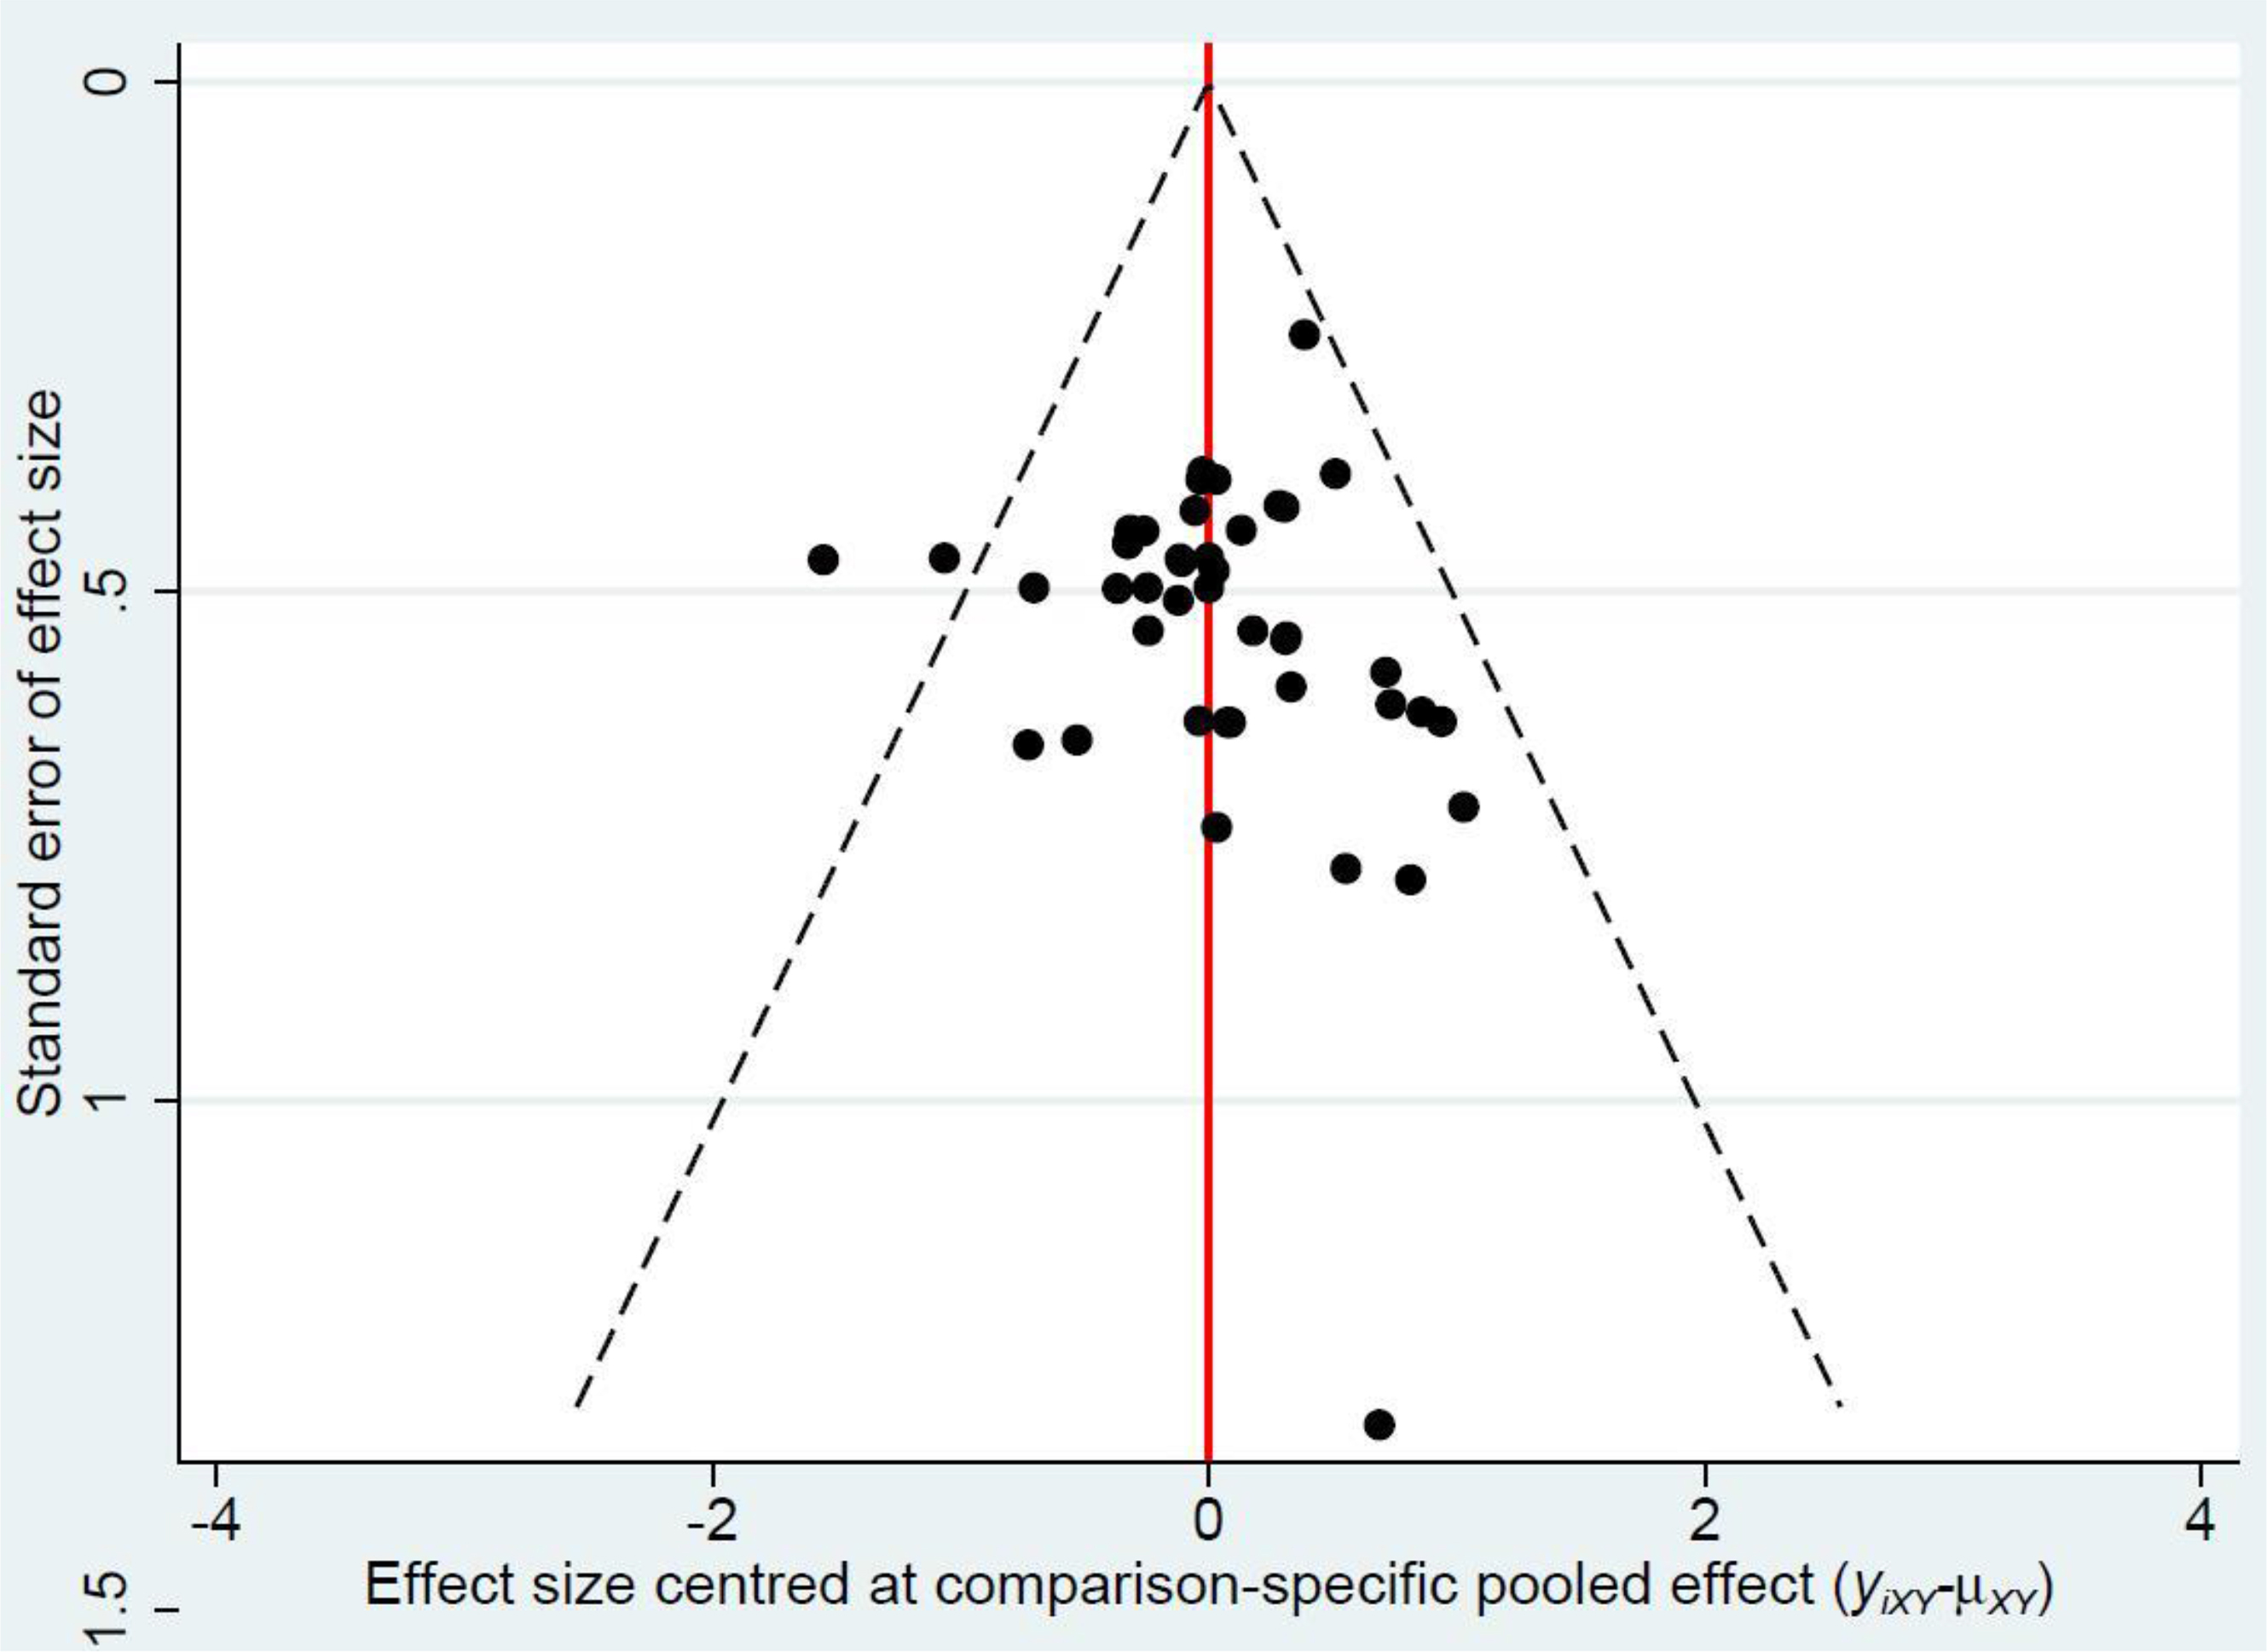 The funnel plot of the prediction refractive error within ±1.00 D in subgroup analysis.